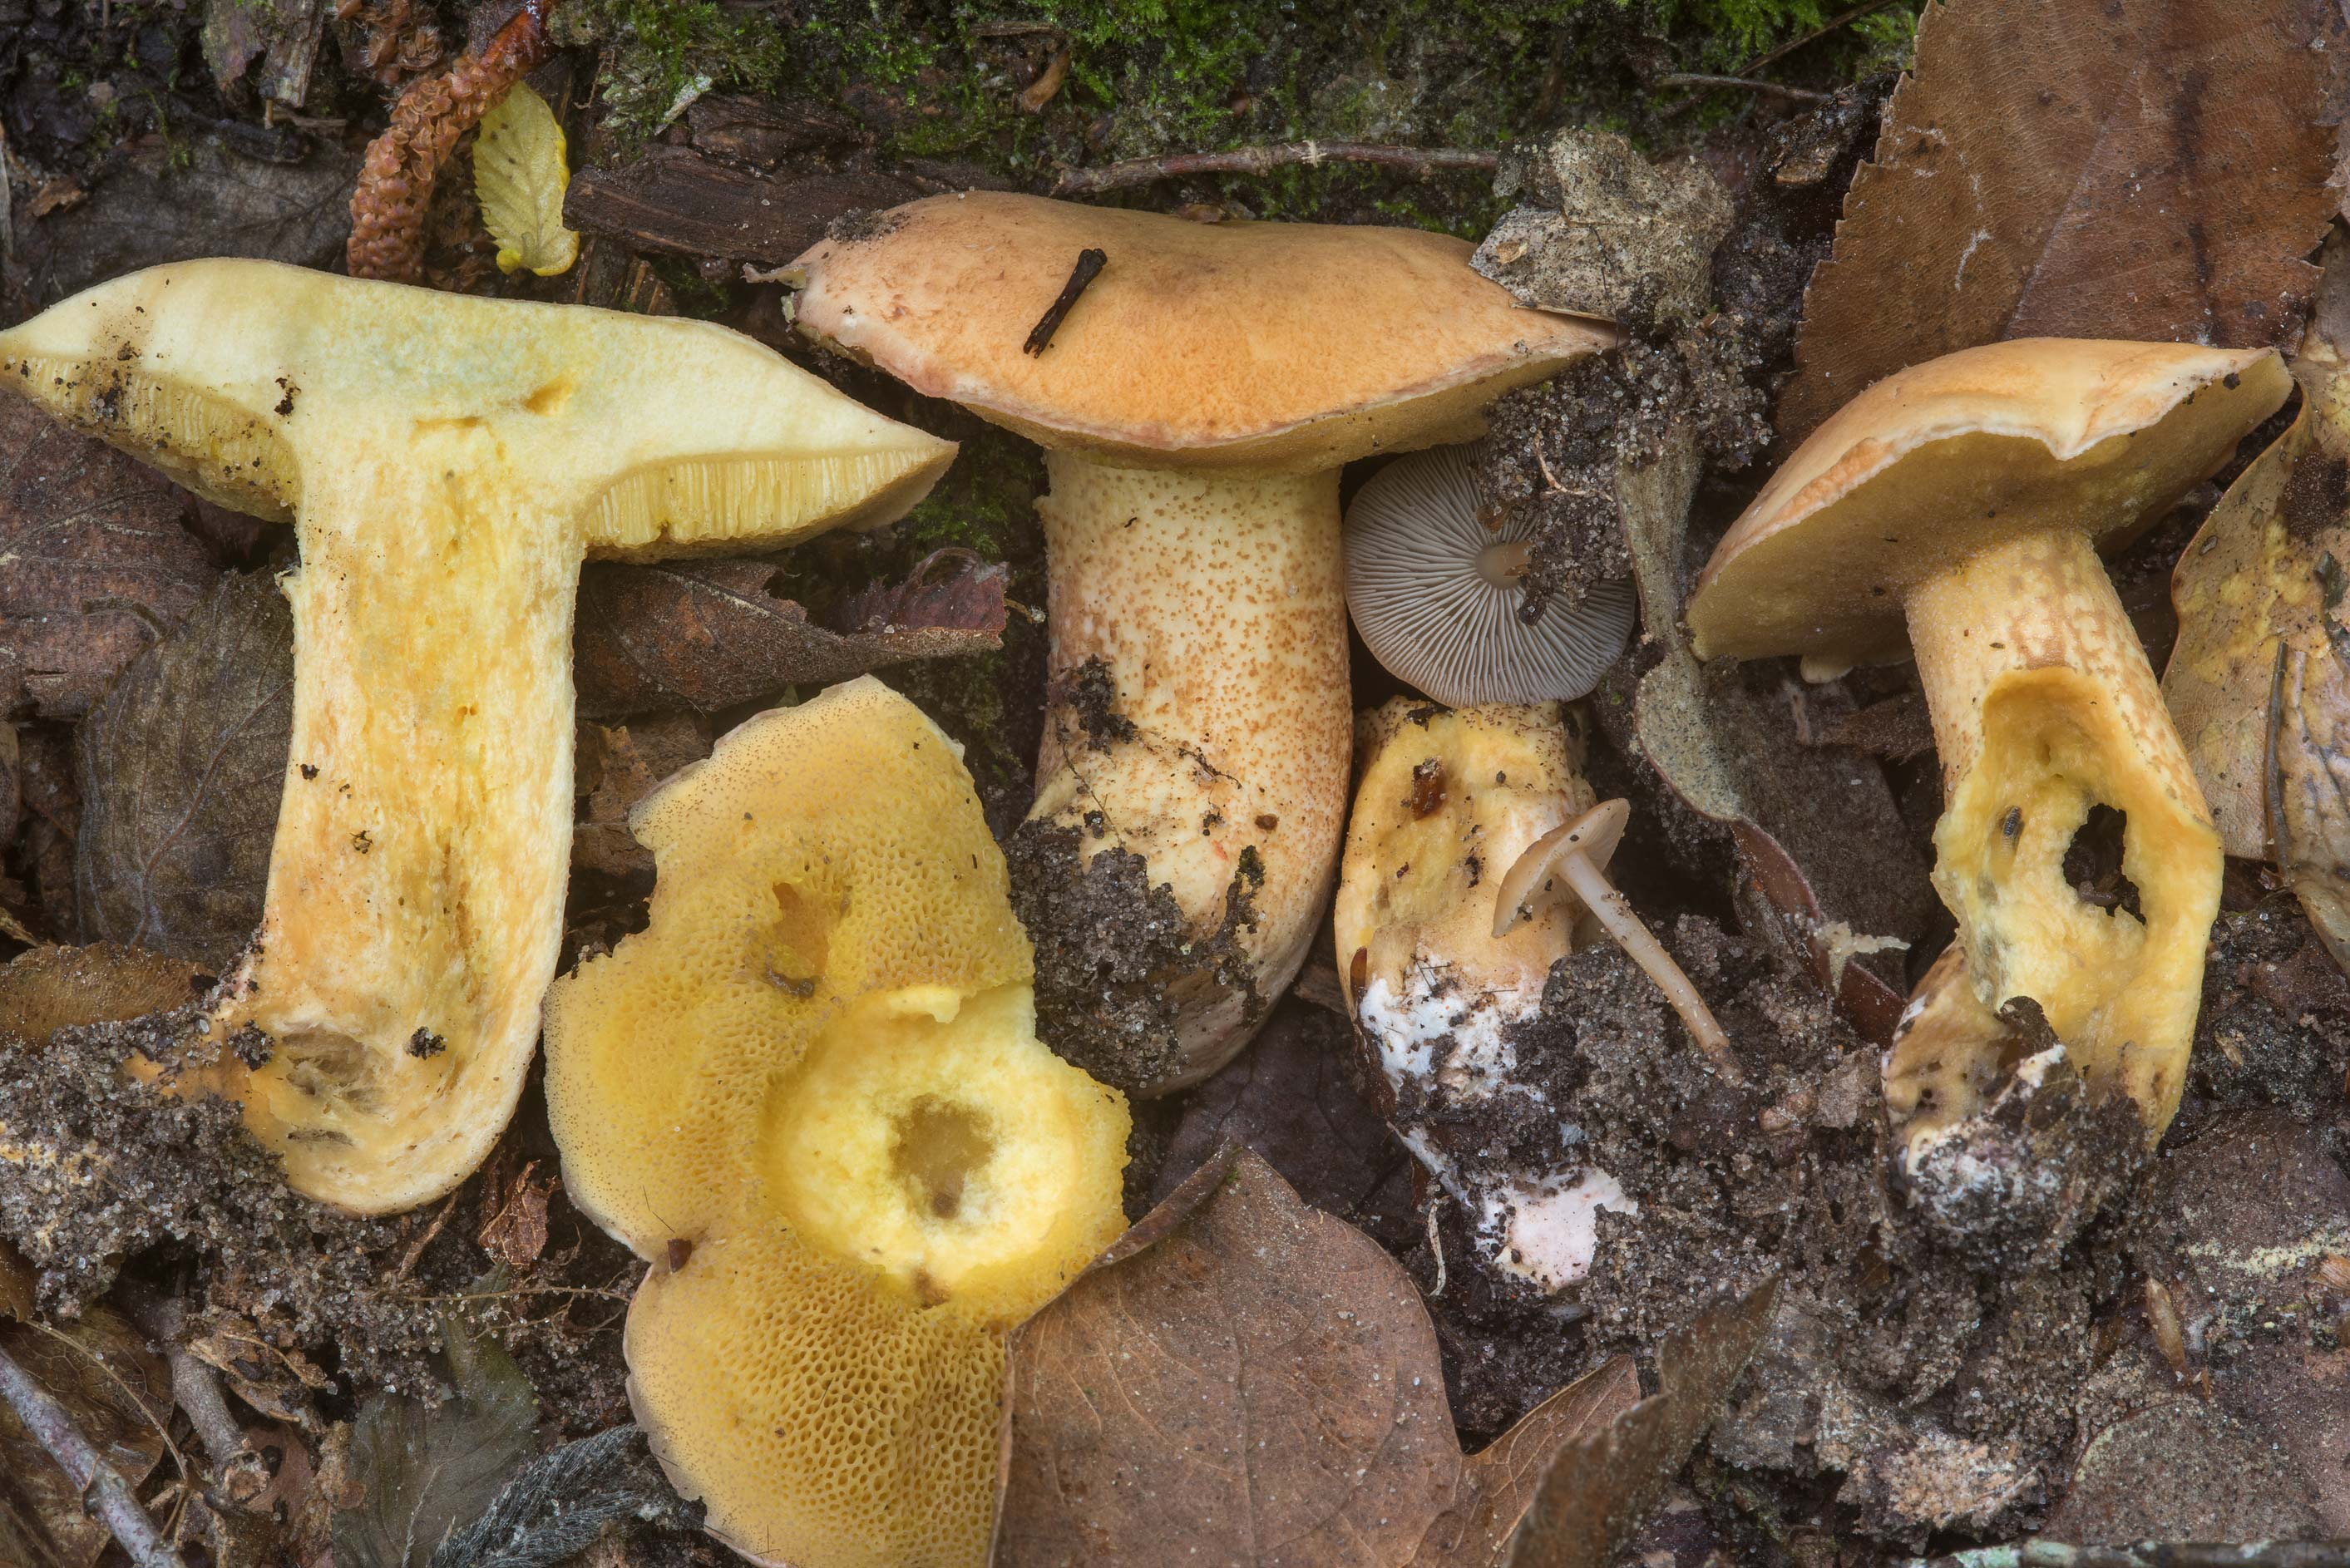 Group of bolete mushrooms Suillus hirtellus on...National Forest near Huntsville, Texas